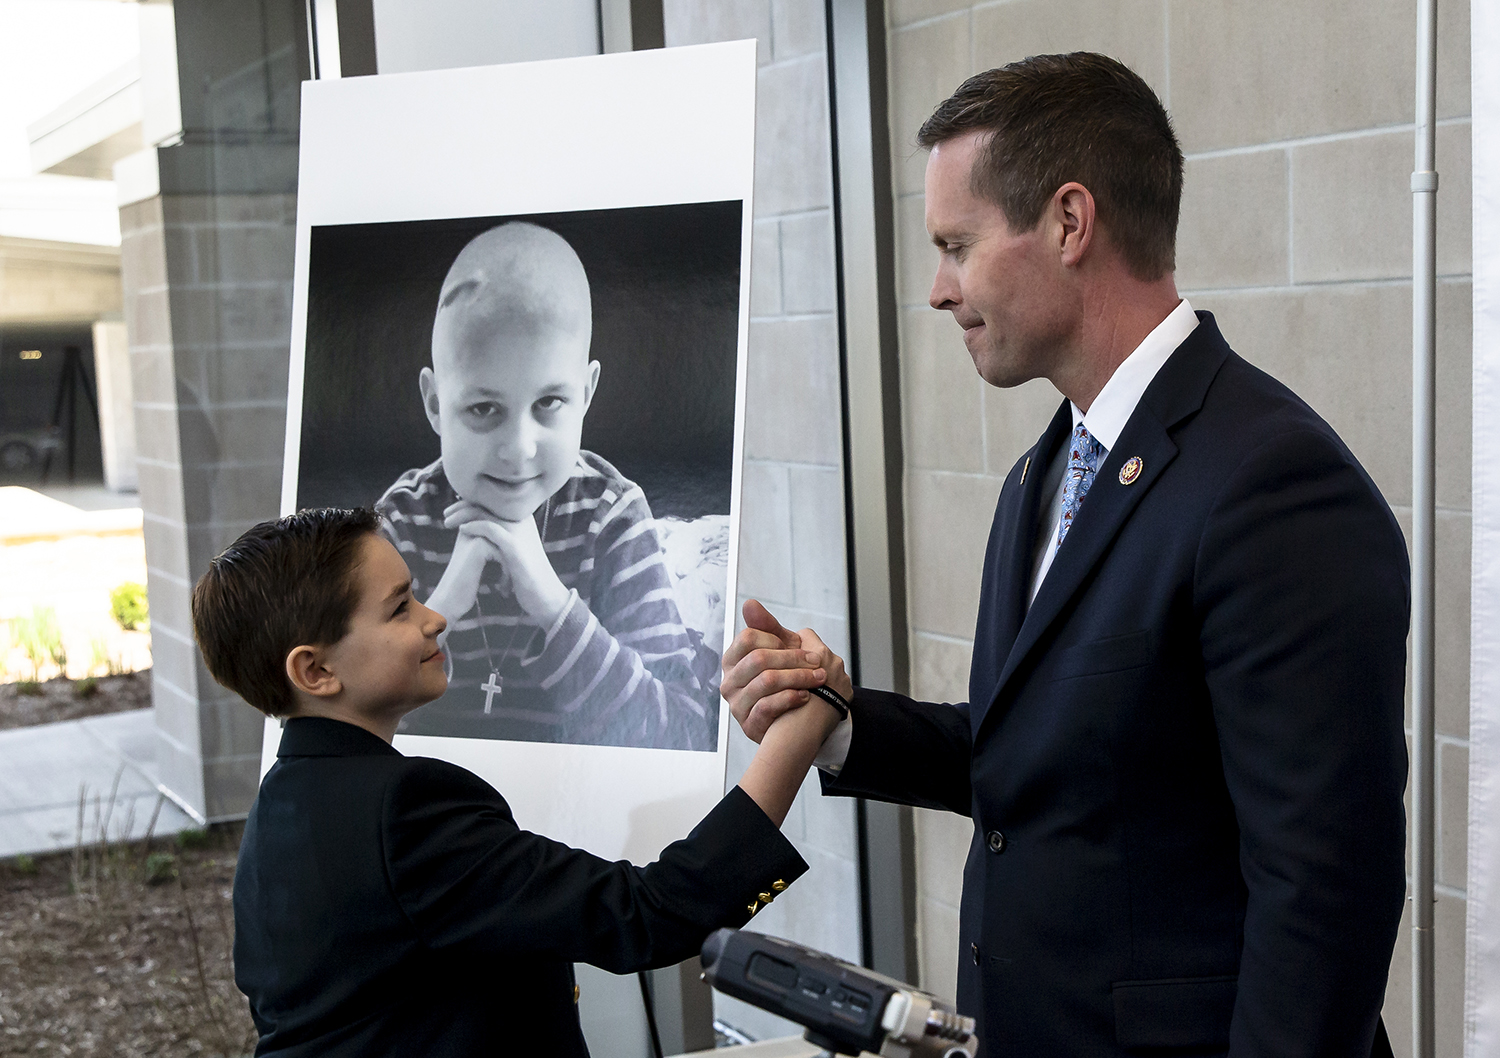 U.S. Rep. Rodney Davis, R-Taylorville, gets a hand shake from Jacky Wade, the twin brother of Jonny Wade pictured behind them who passed away from brain cancer on Christmas Eve in 2015, after the Wade family joined Davis to announce the Jonny Wade Pediatric Cancer Research Act (H.R. 2234) at HSHS St. John's Women and Children's Clinic, Monday, April 22, 2019, in Springfield, Ill. The bill, sponsored by Davis, would eliminate the Presidential Election Campaign Fun and transfer the #372.8 Million balance to a 10-year Pediatric Research Initiative Fund for pediatric cancer research. [Justin L. Fowler/The State Journal-Register]